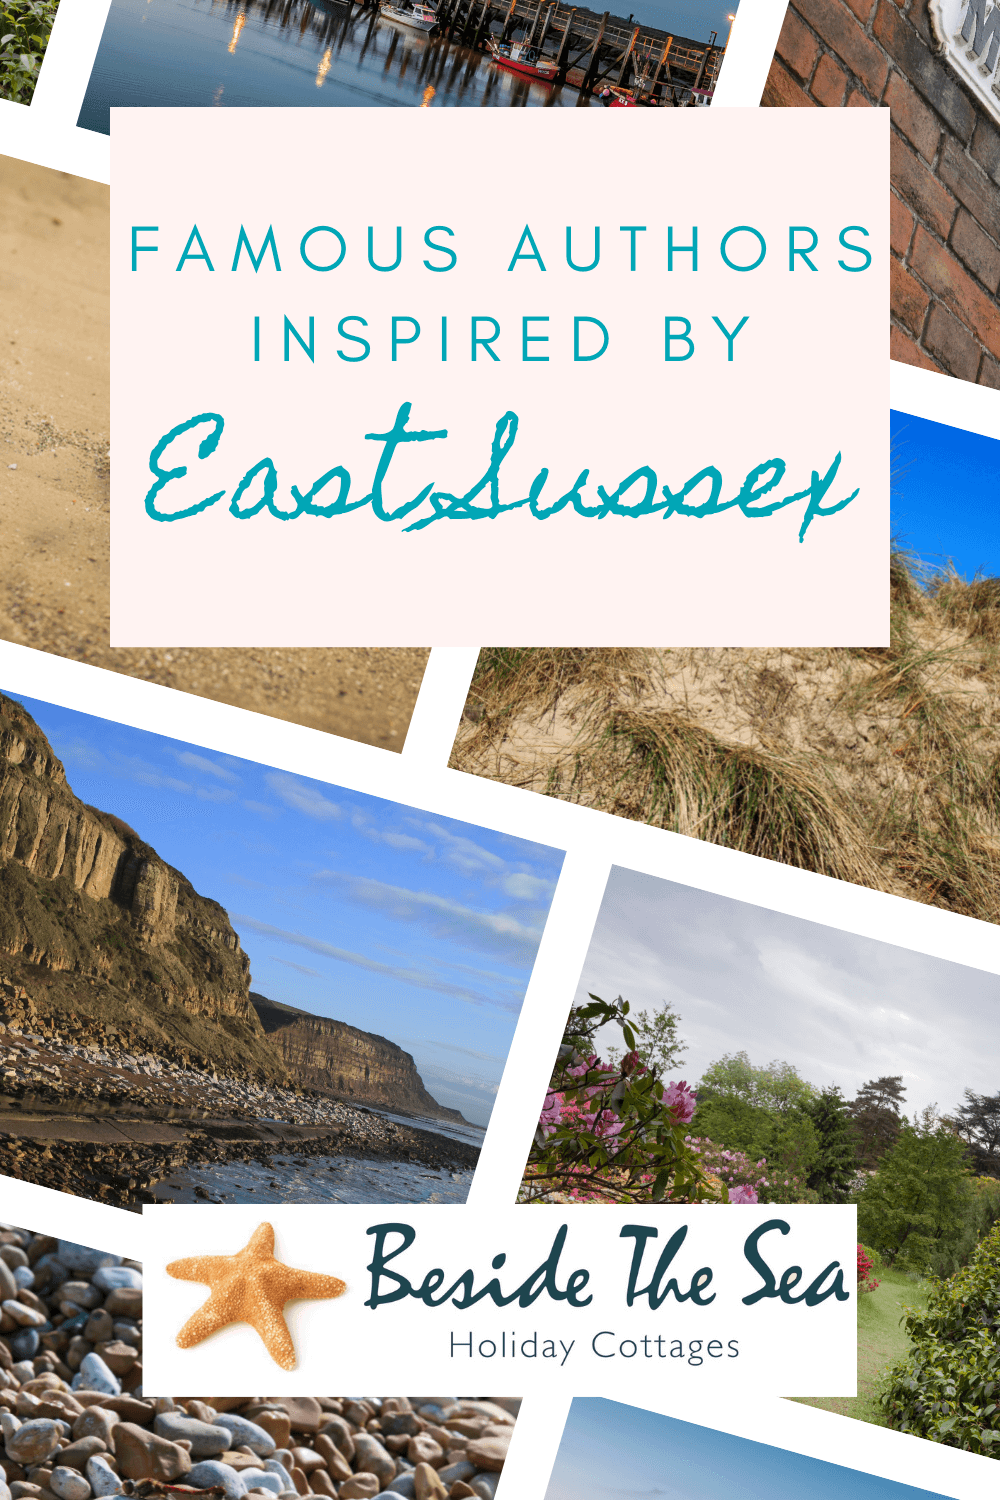 East Sussex is famous for its authors too. Which ones do you recognise? Who will you read next?